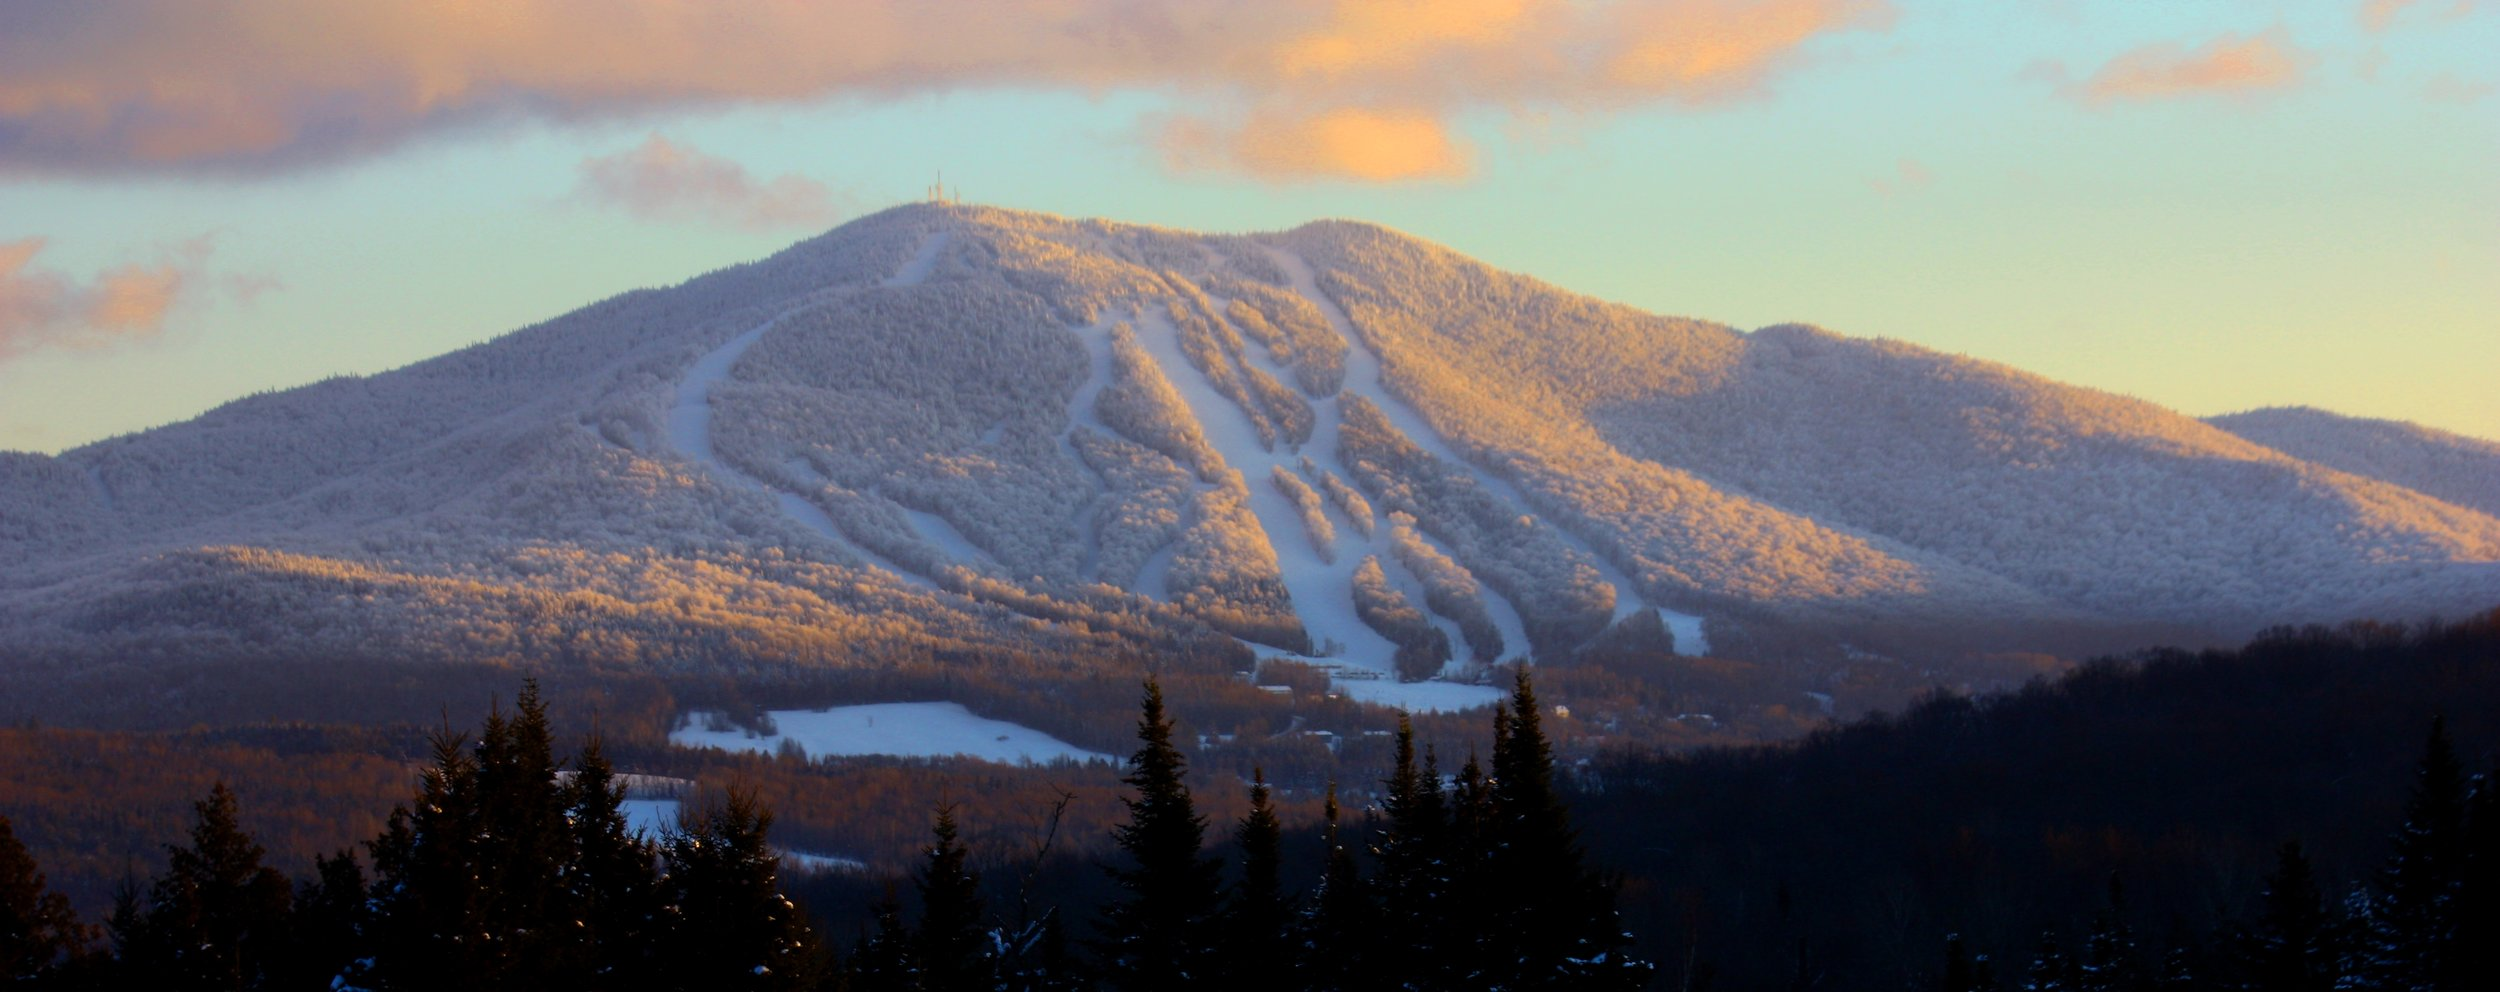 "Burke Mountain is a mountain located in the ""Northeast Kingdom"" of Vermont. The bulk of the mountain is in Caledonia County, but its southeast side is in Essex County. It is flanked to the east by Umpire Mountain.  Burke Mountain, Vermont Patrick McCaffrey - Patrick McCaffrey"